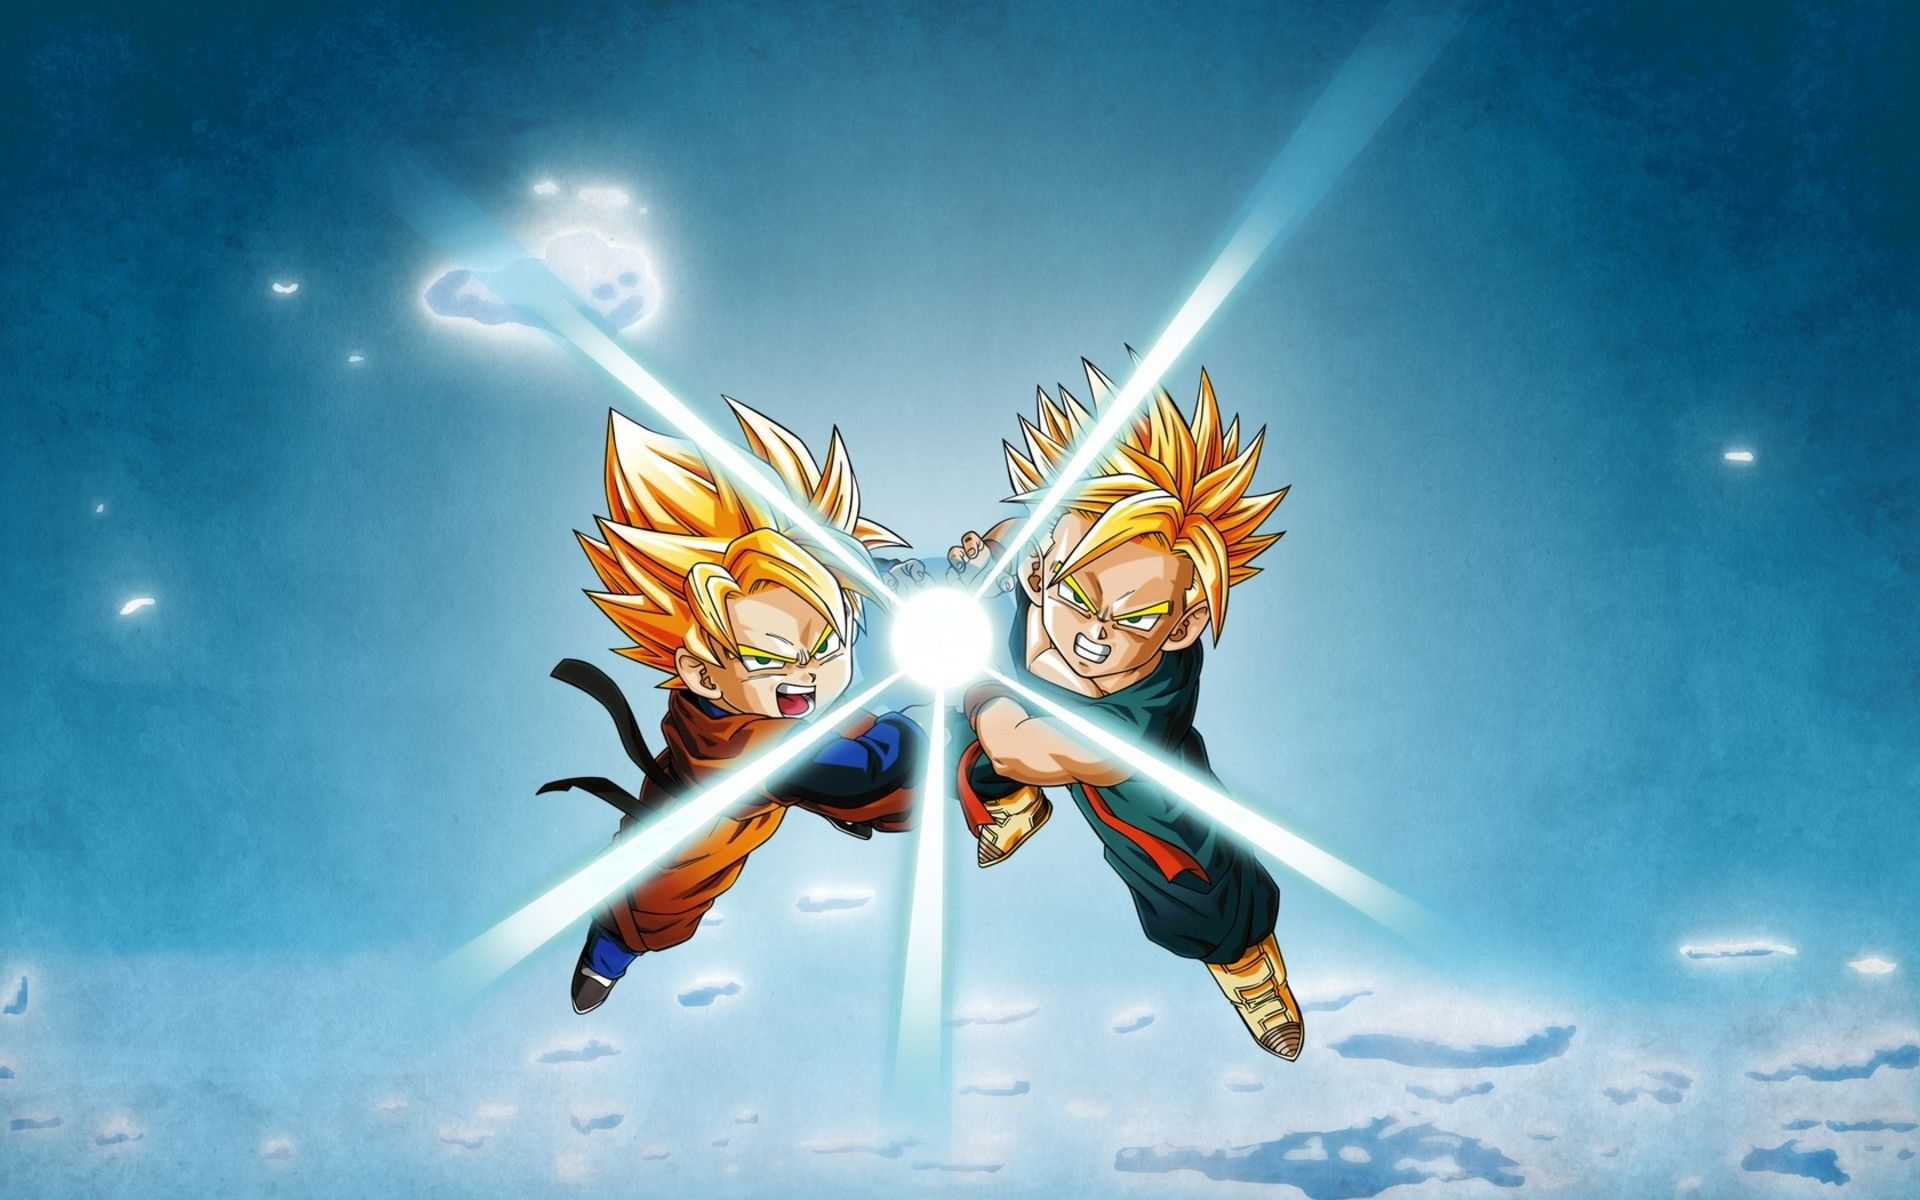 Son Goten Desktop Wallpapers Top Free Son Goten Desktop Backgrounds Wallpaperaccess